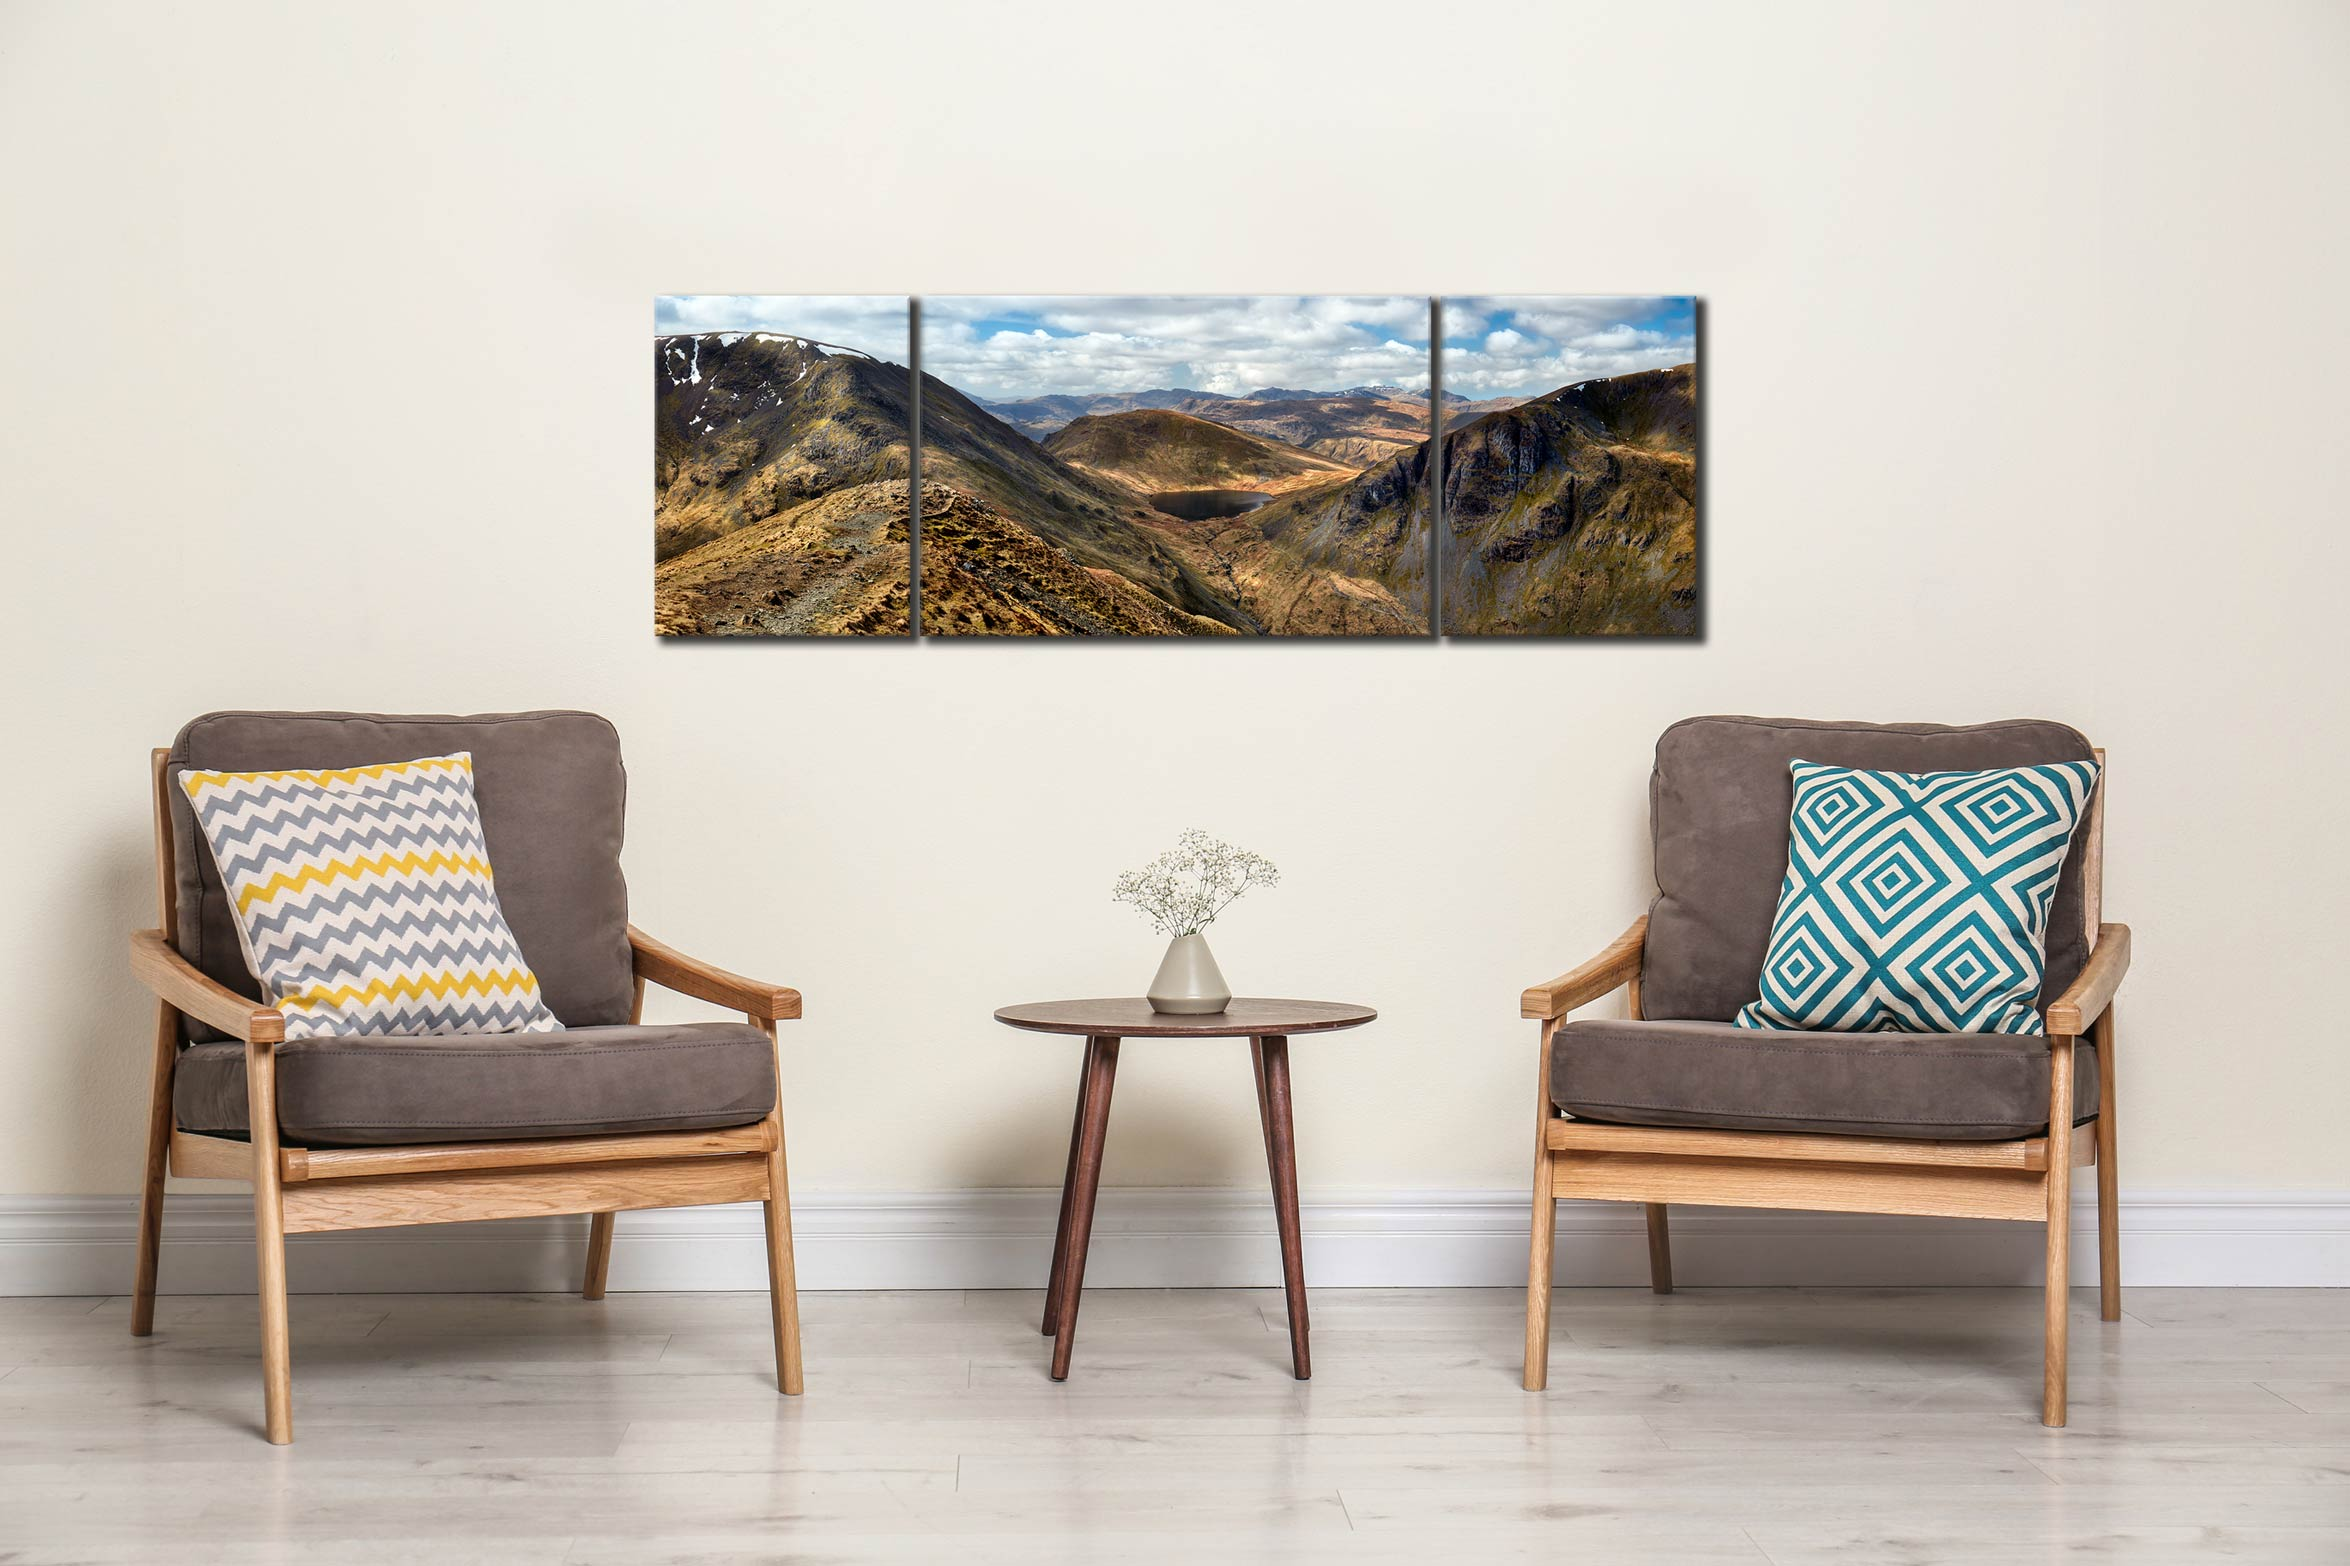 Deepdale Hause Panorama - 3 Panel Wide Mid Canvas on Wall